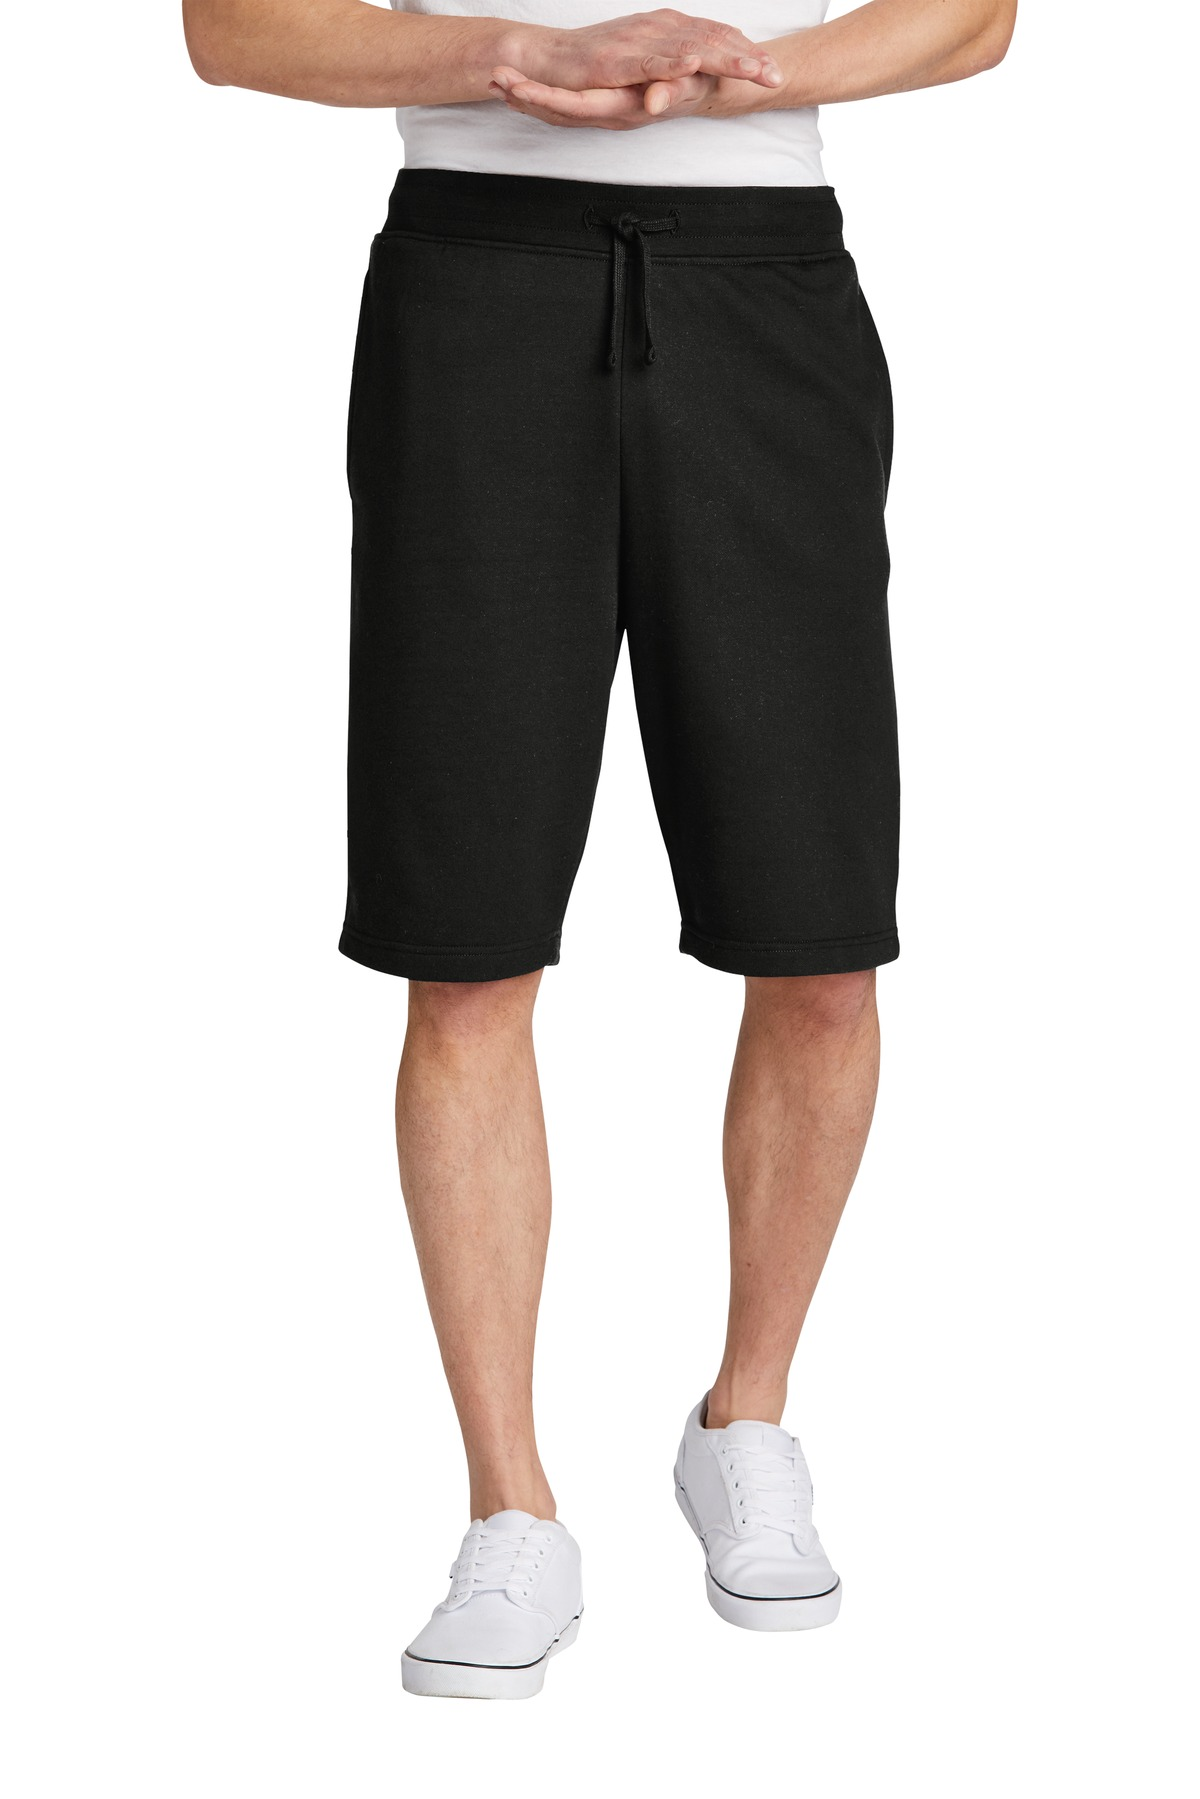 District ®  V.I.T. ™ Fleece Short DT6108 - Black